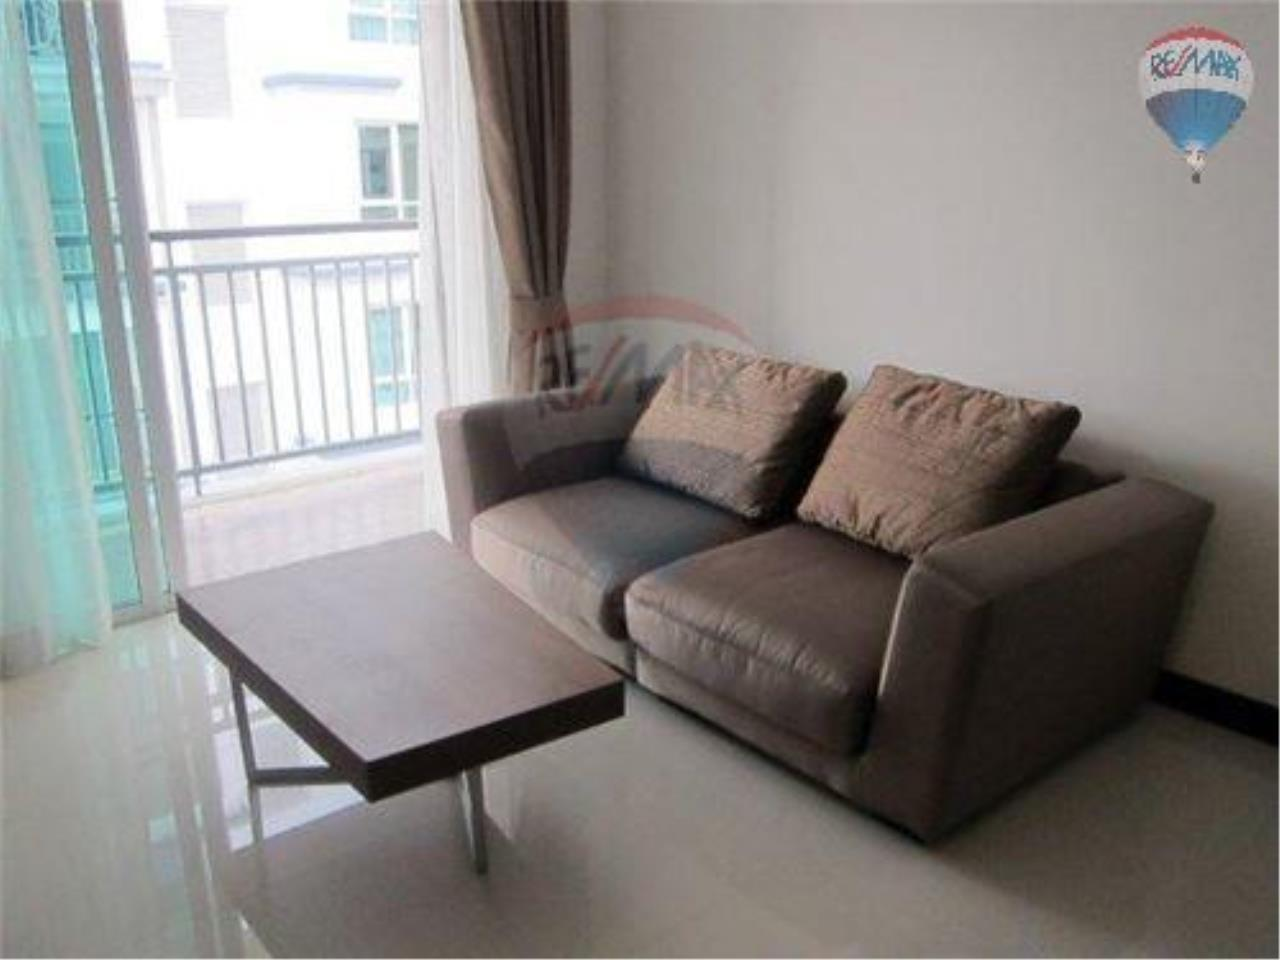 RE/MAX Properties Agency's 2 Bedroom Apartment for rent - VOQUE in Sukhumvit 16 2